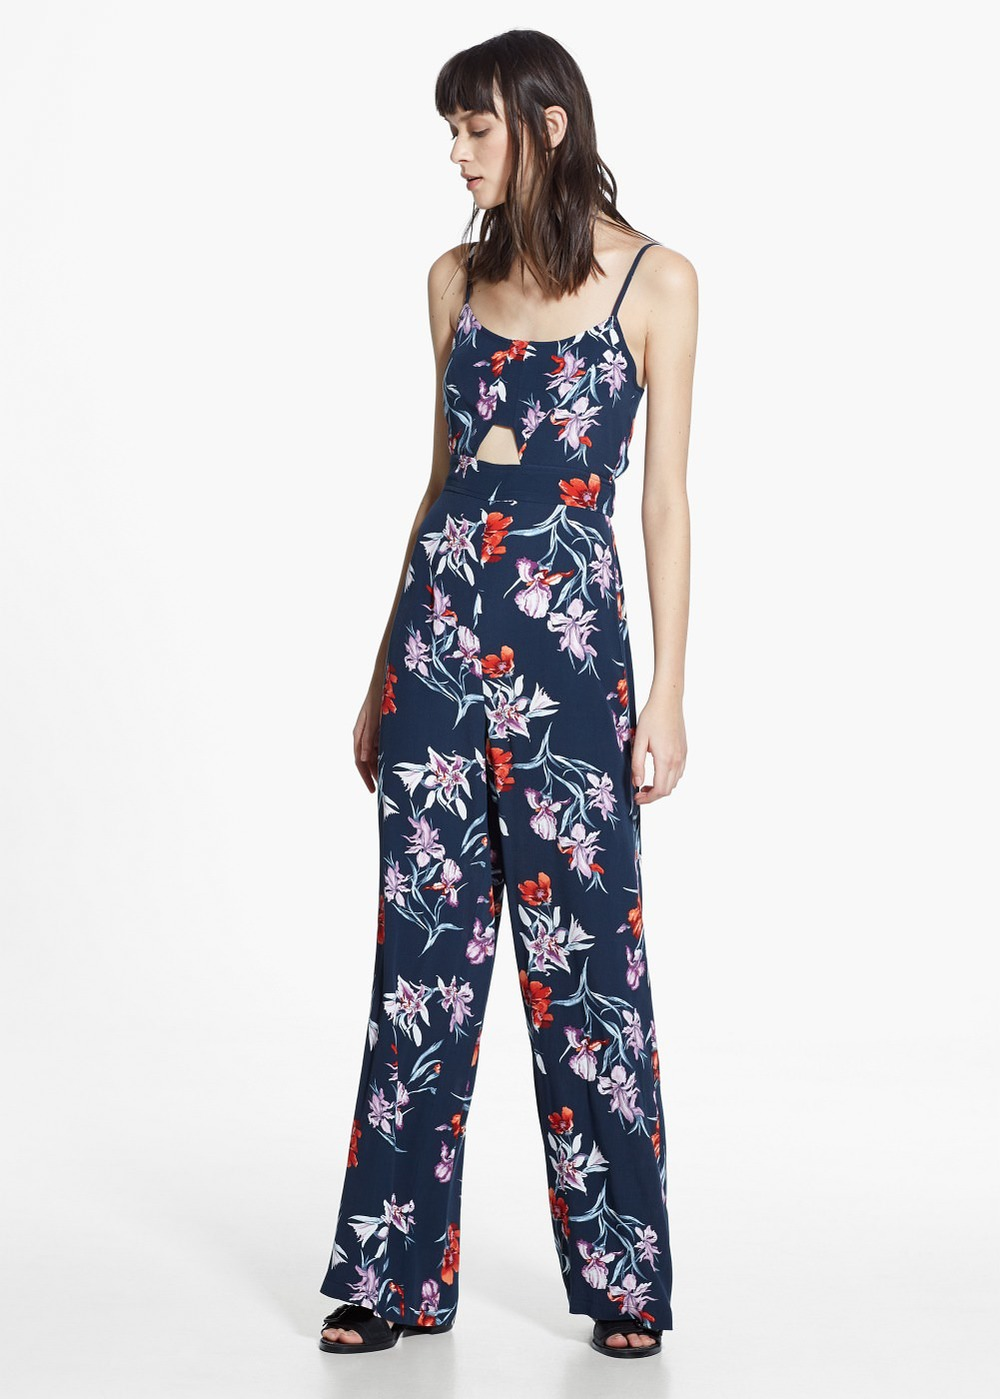 Floral long jumpsuit,  $99.99